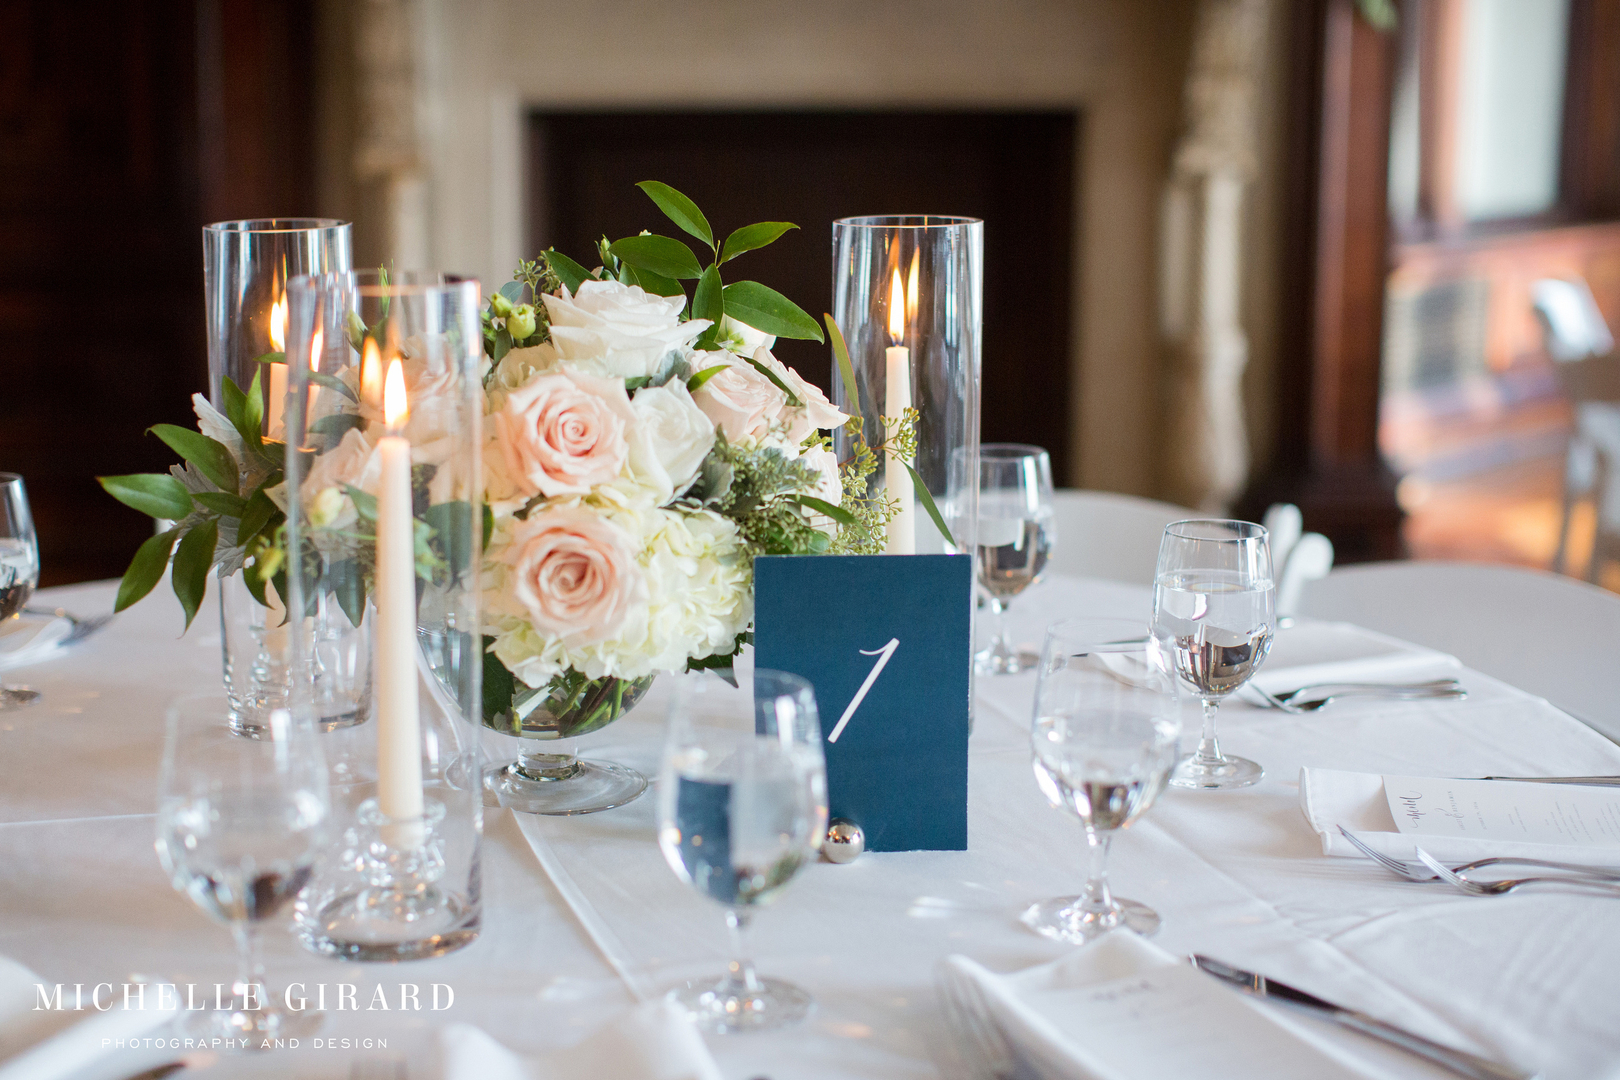 Stylish blooms connecticut wedding florist ct floral designs junglespirit Images